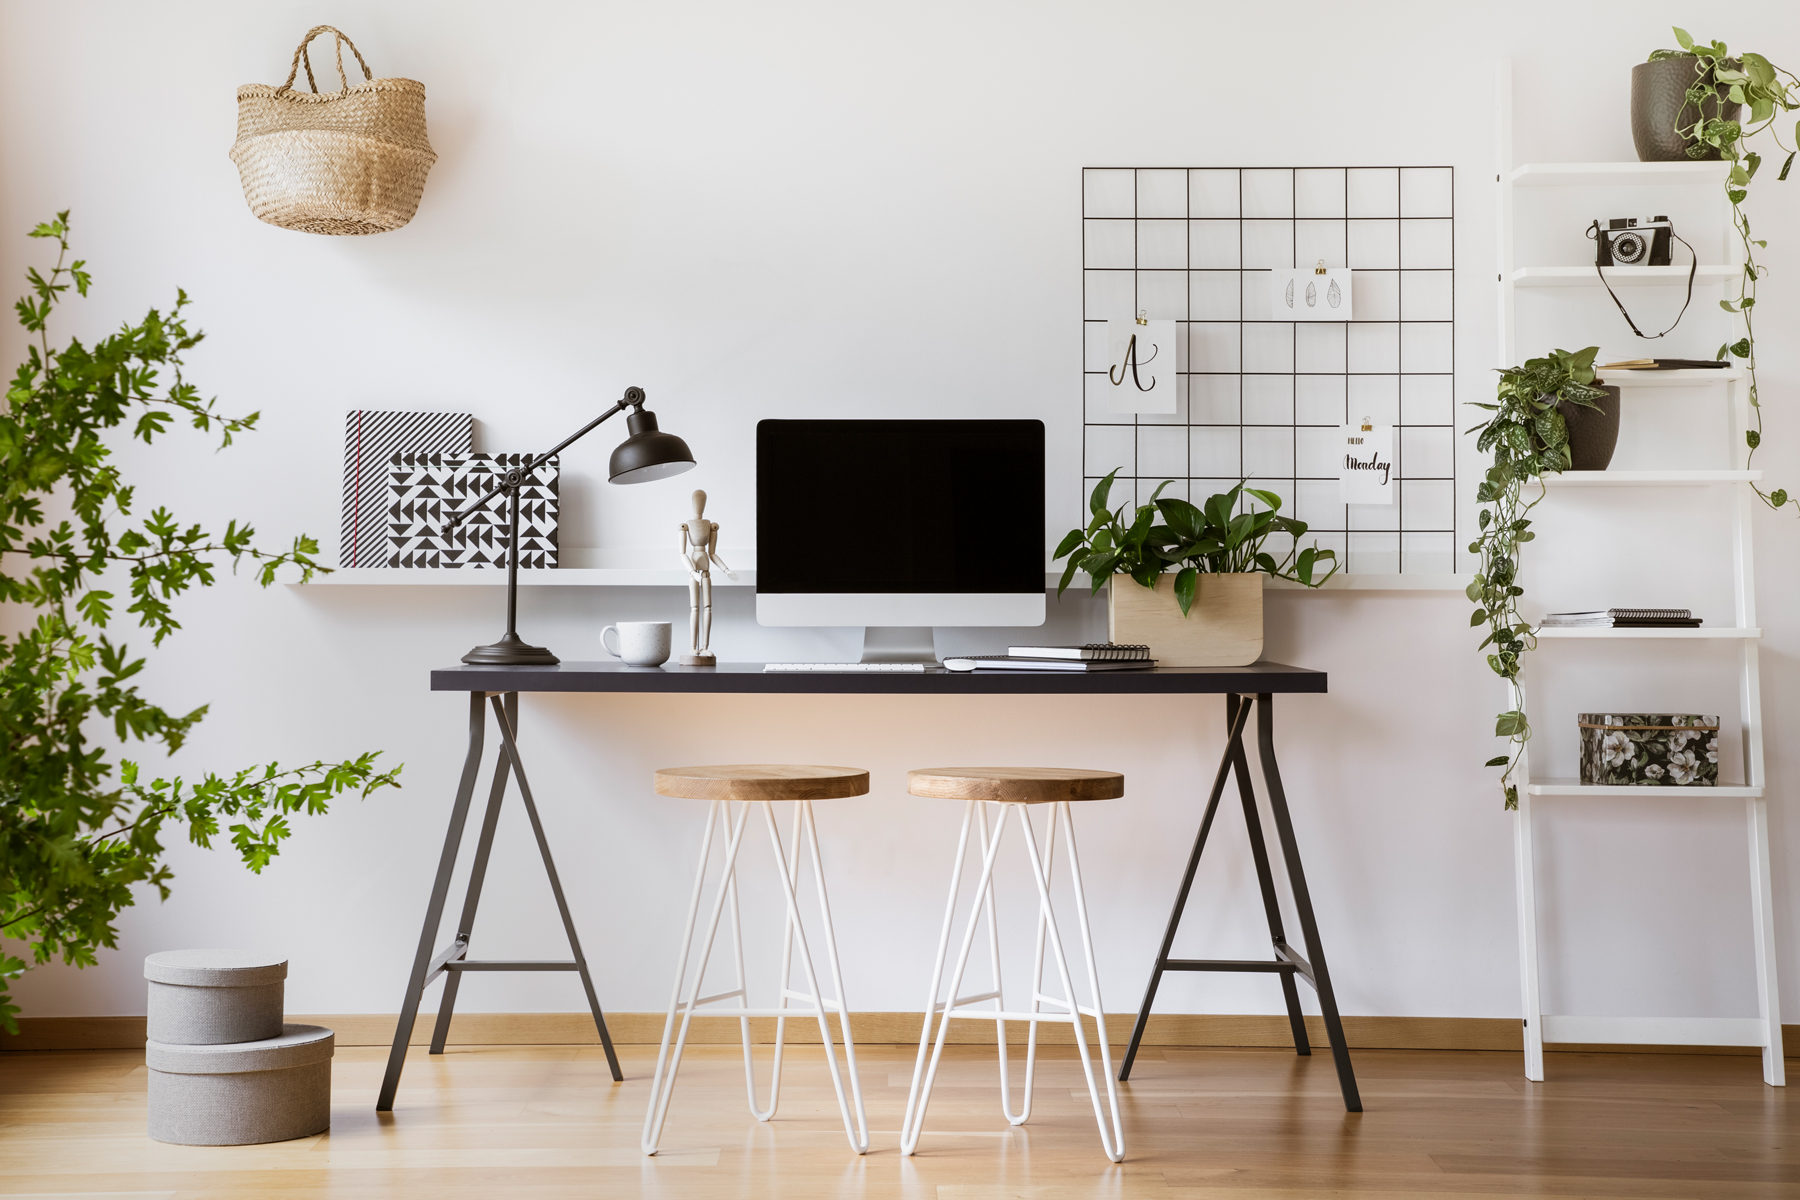 Pictures: Small Home Office Ideas and Design Inspiration